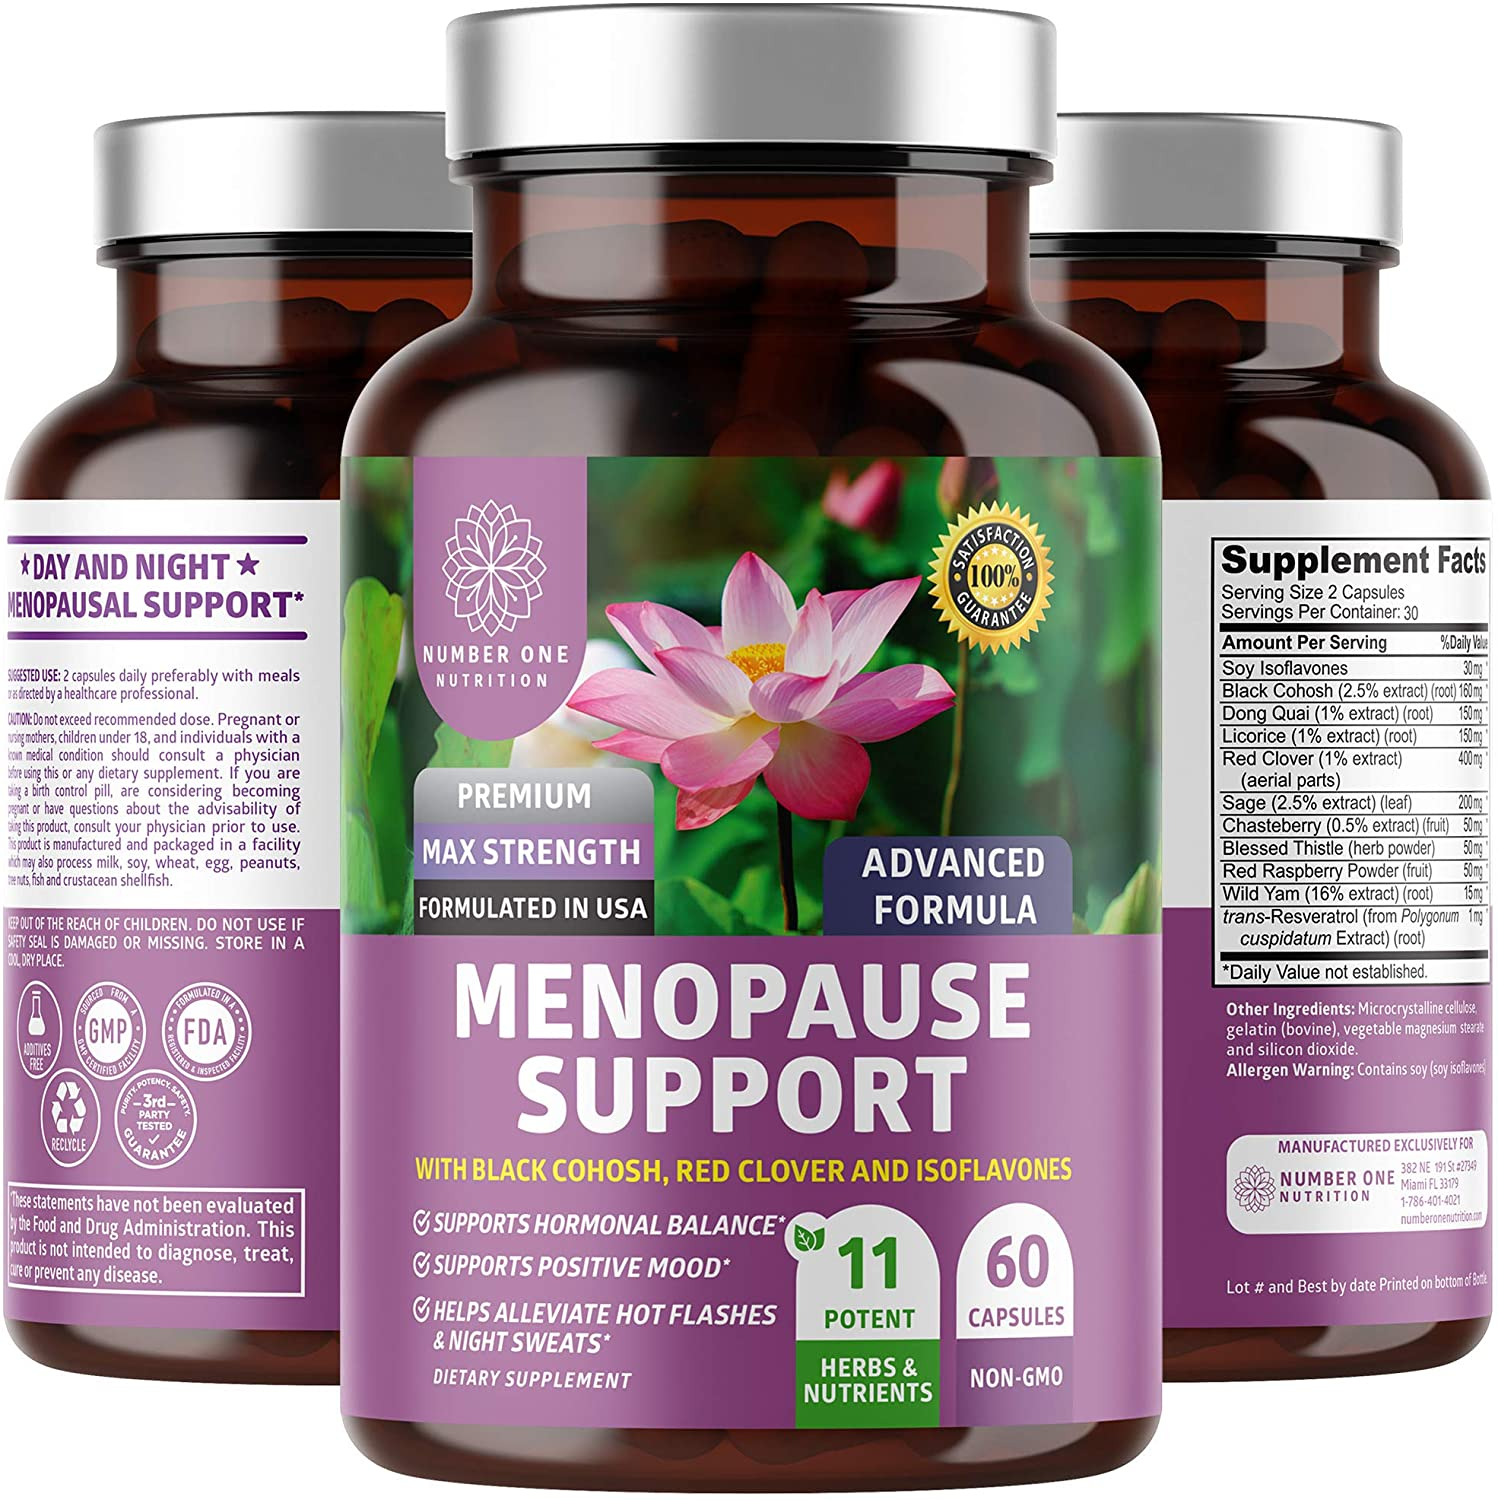 N1N Premium Menopause Support for Women [12 Potent Ingredients] All Natural Menopause Relief with Dong Quai and Black Cohosh to Reduce Hot Flashes, Night Sweats and Hormonal Imbalance, 60 Veg Caps